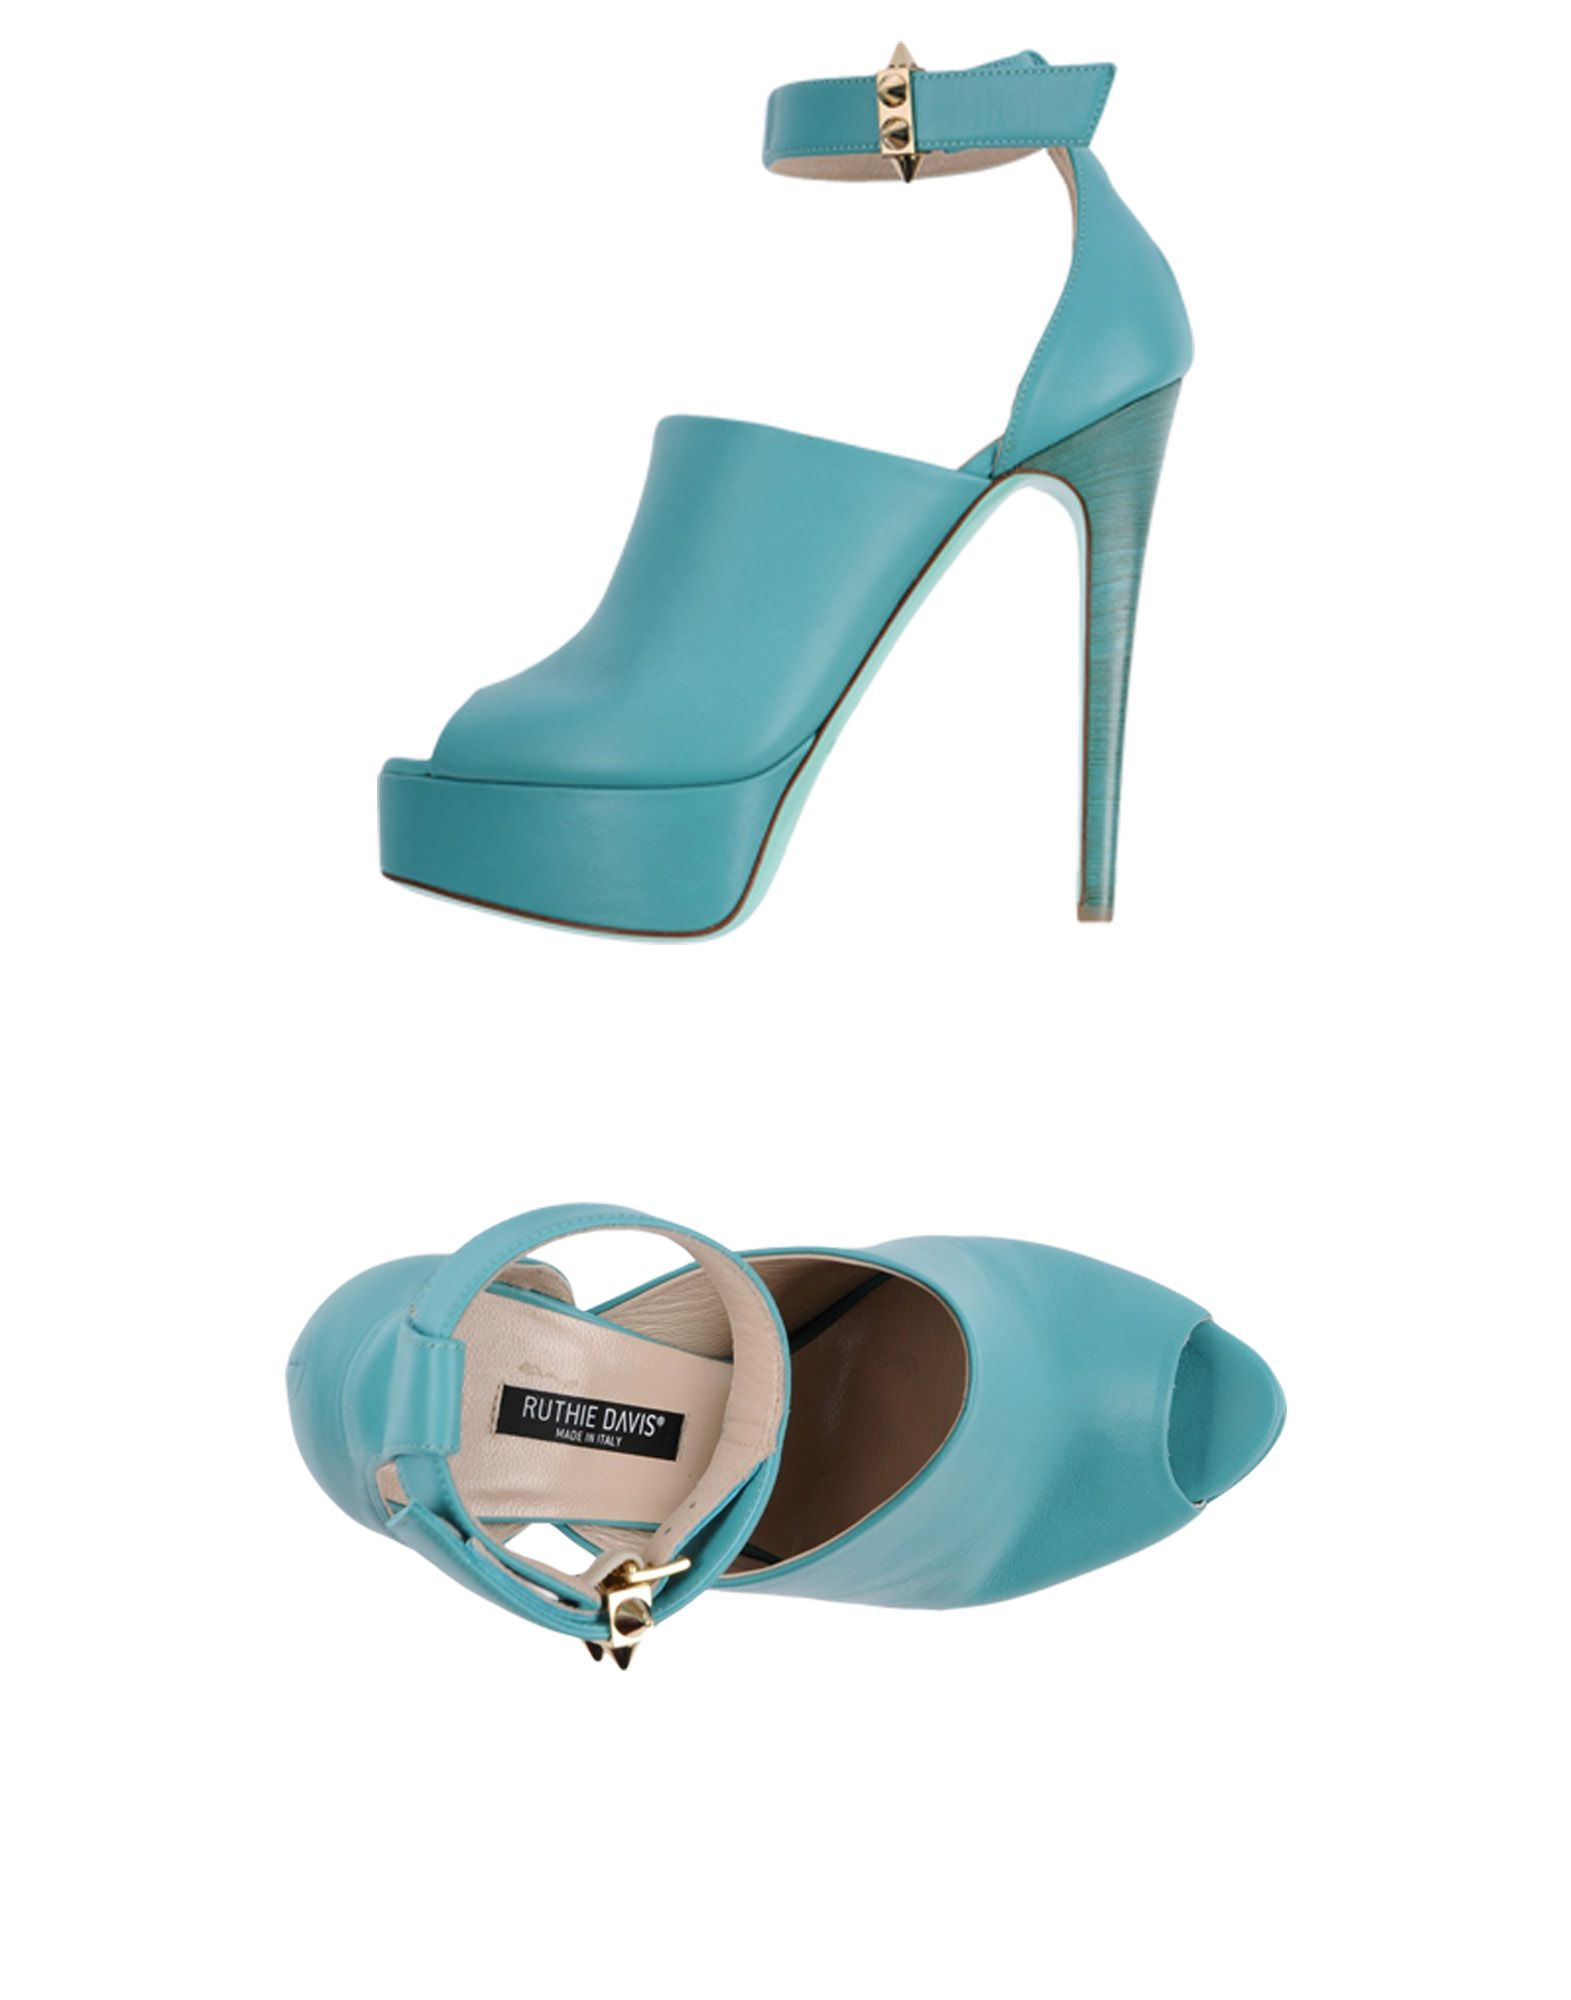 RUTHIE DAVIS Sandals in Turquoise